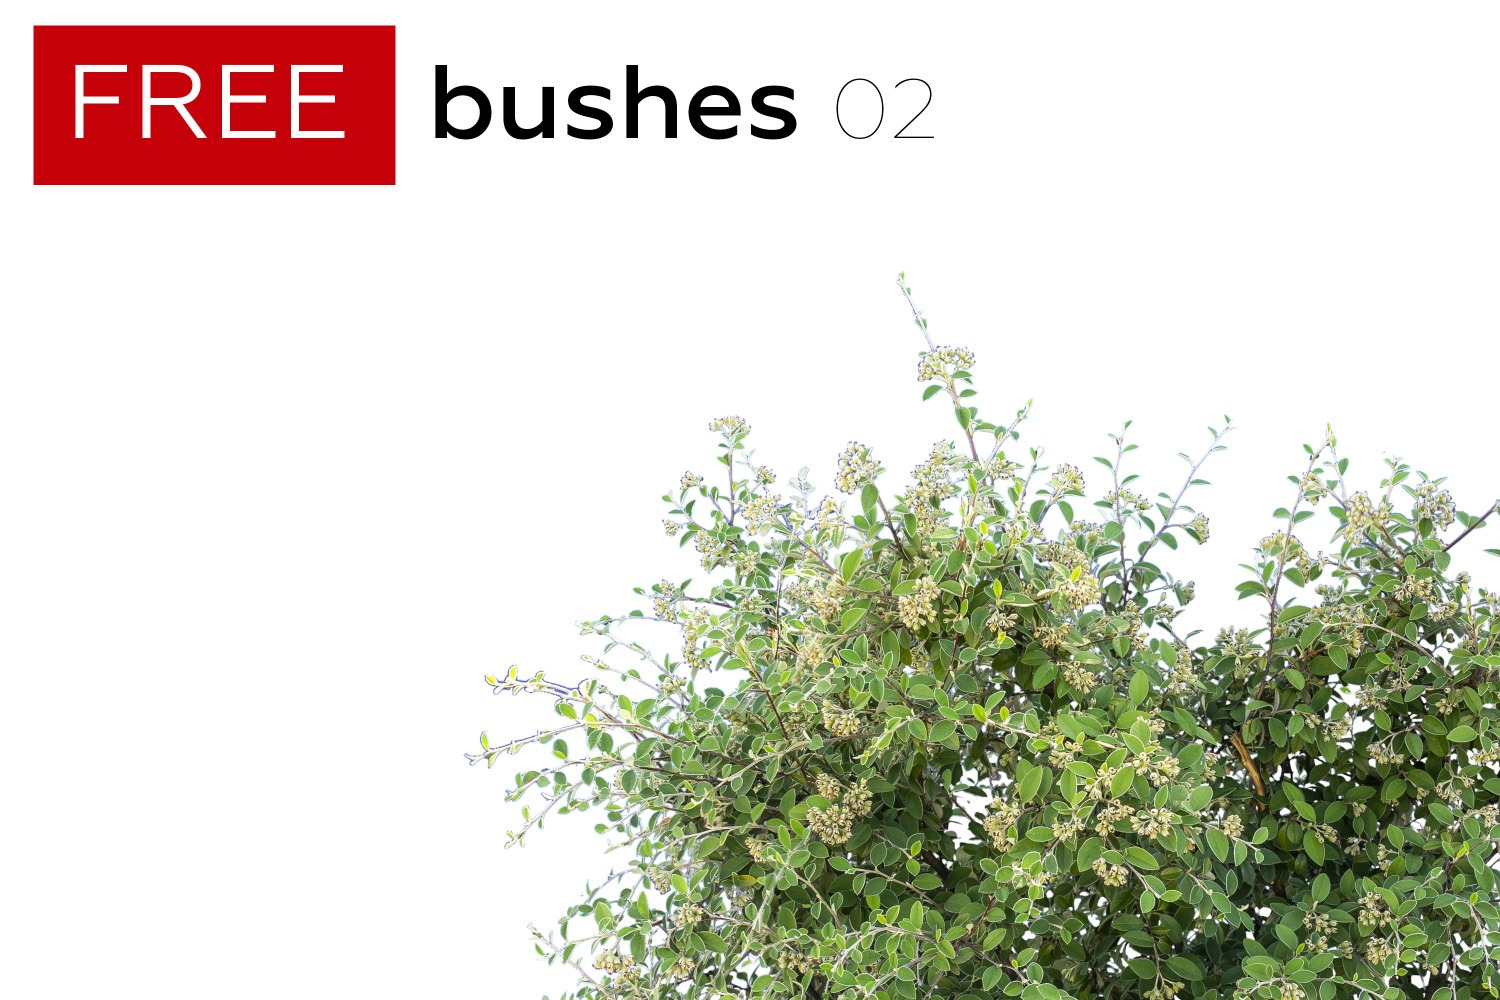 FREE STUFF - 5 Free Bushes - Volume 2